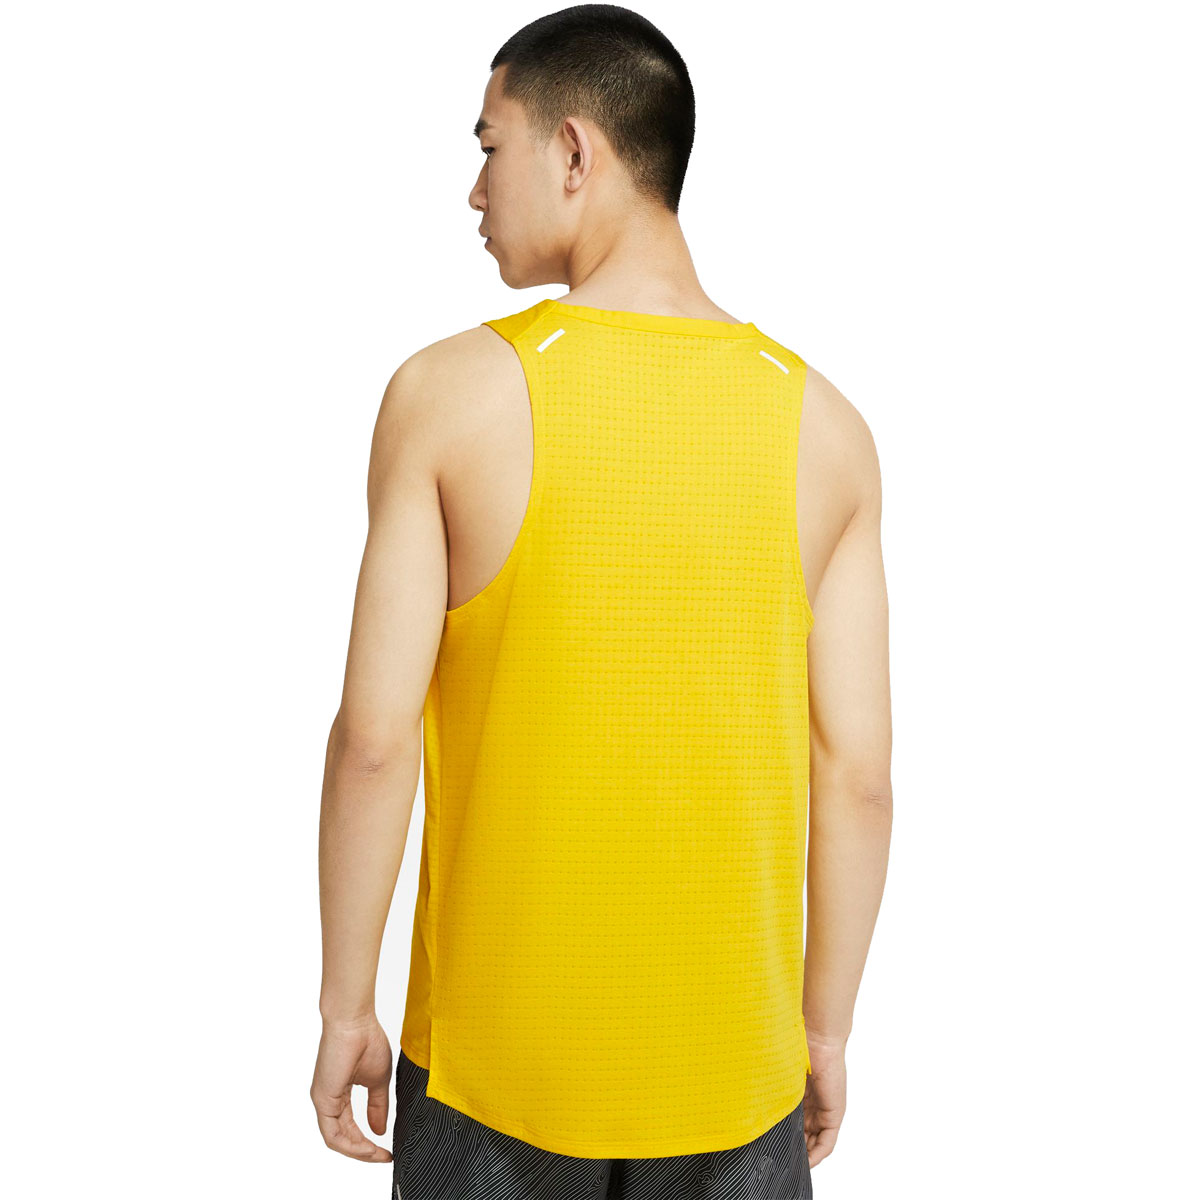 Men's Nike Rise 365 Trail Running Tank - Color: Speed Yellow/Black - Size: S, Speed Yellow/Black, large, image 2